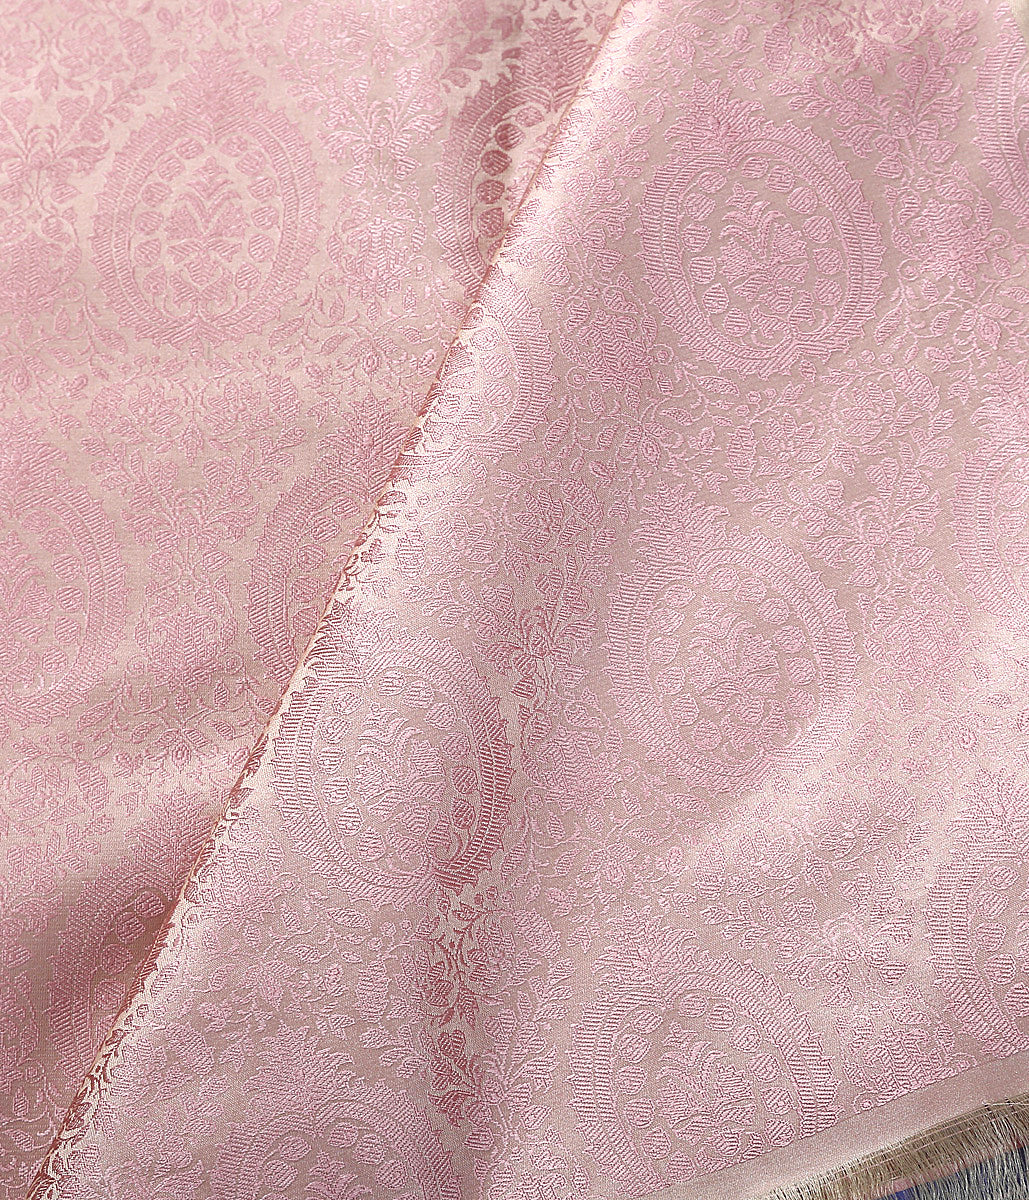 Handwoven soft Pink Self Weave Tanchoi Fabric